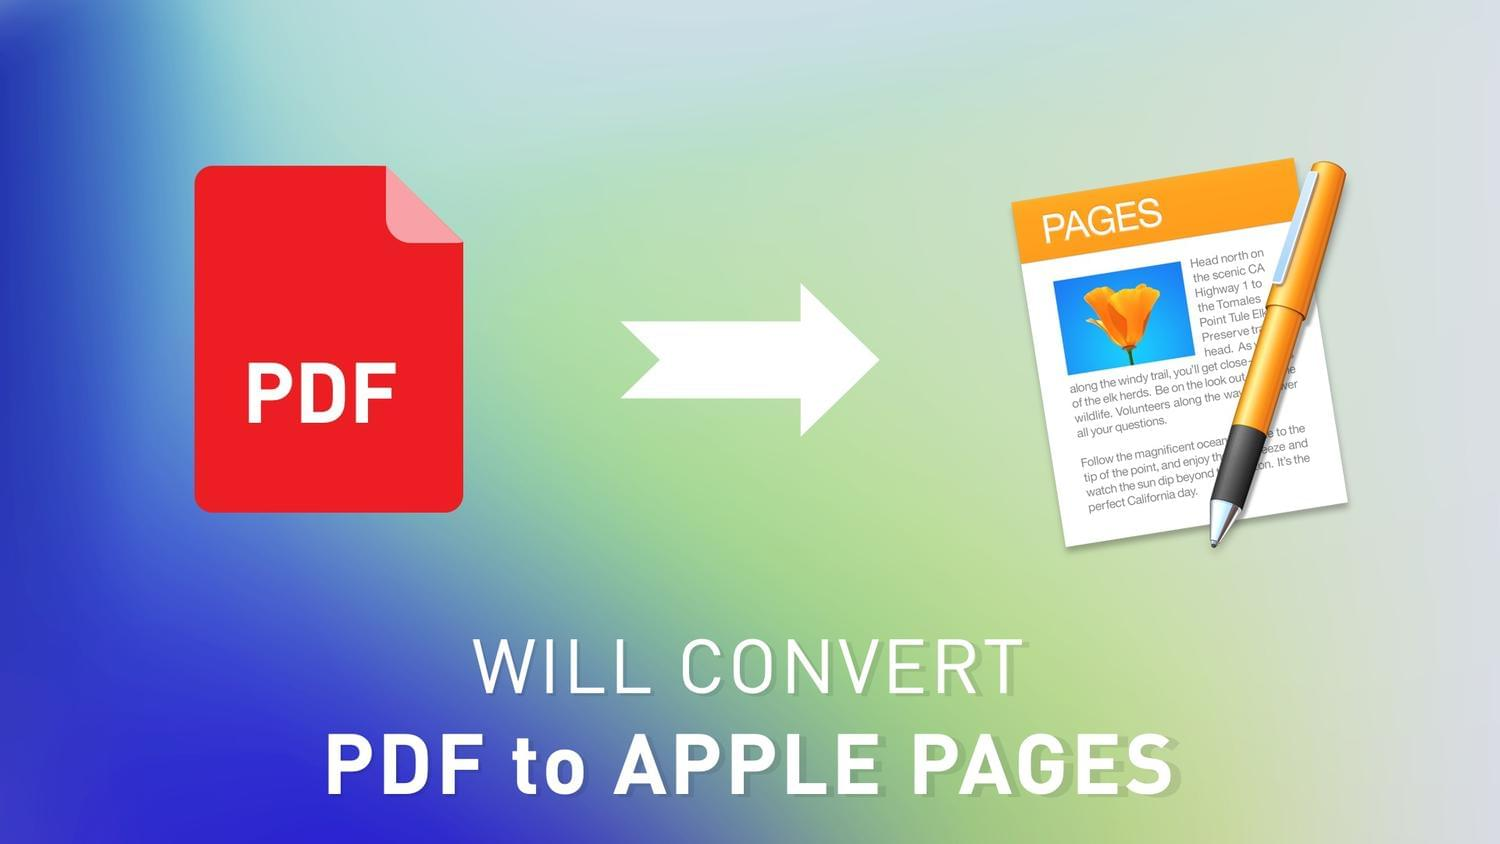 Convert PDF to Pages by arvaone - 115097